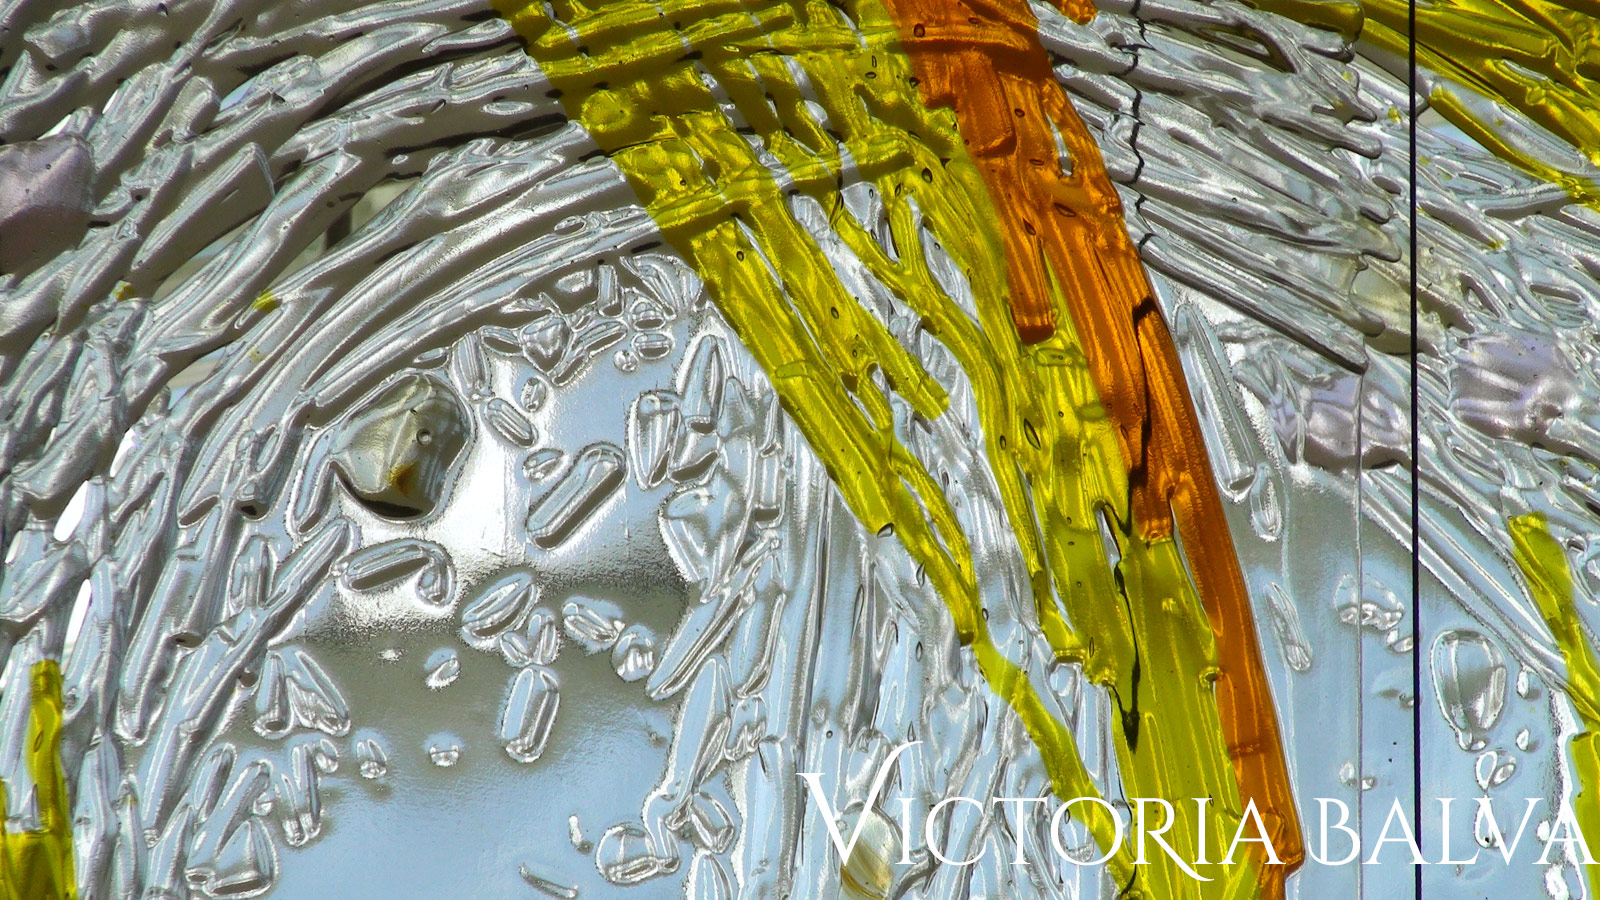 Contemporary abstract decorative glass public art mural